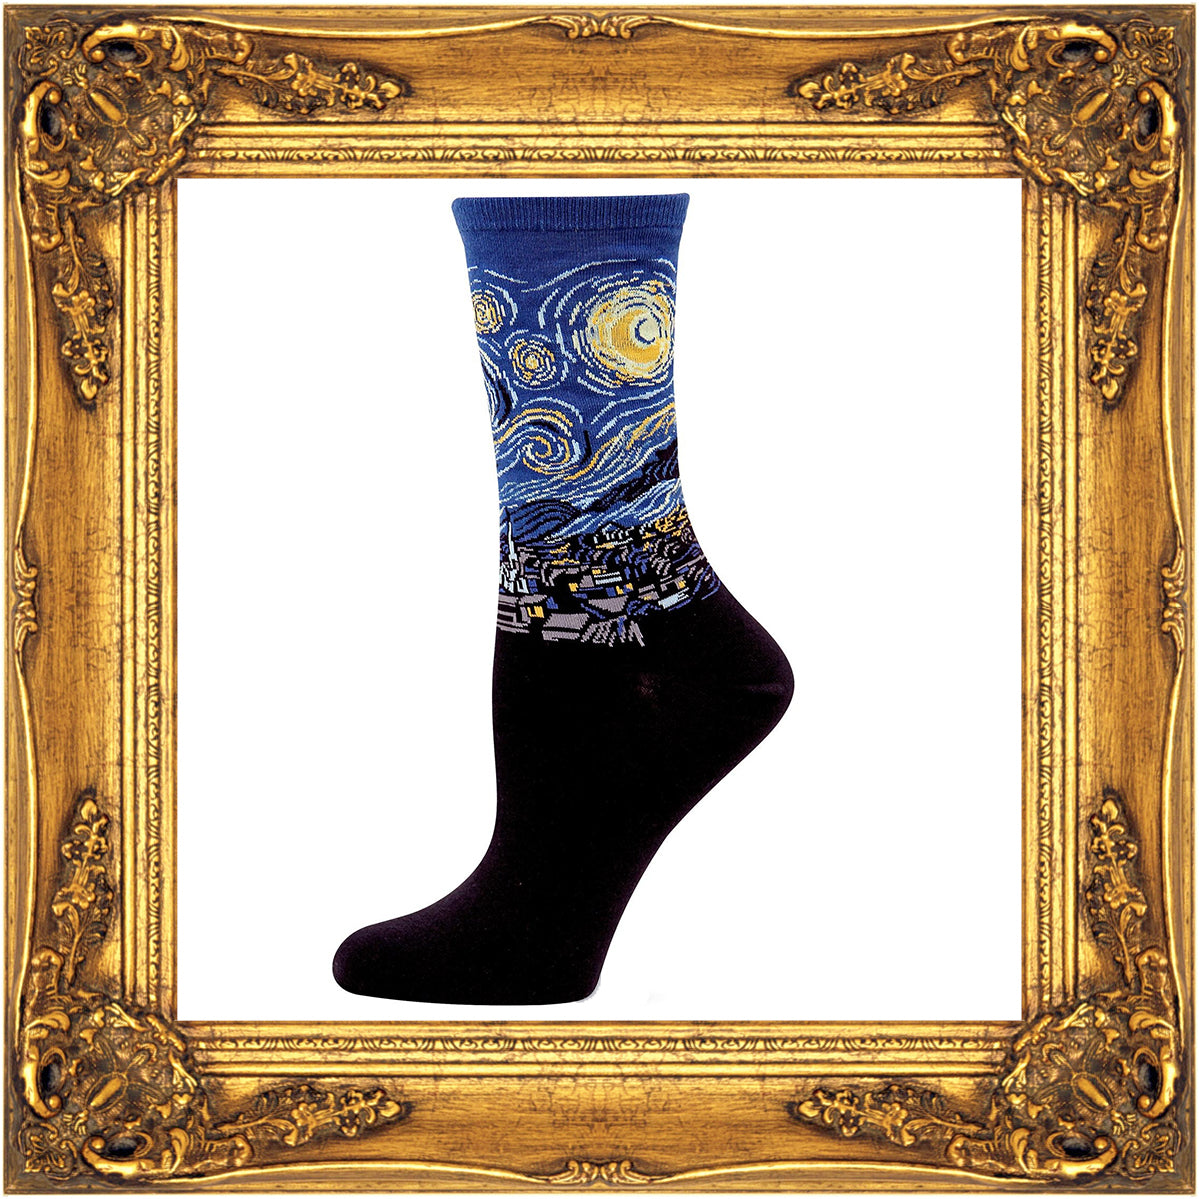 Art Socks with famous paintings like Starry Night by van Gogh turn your feet into an art gallery!